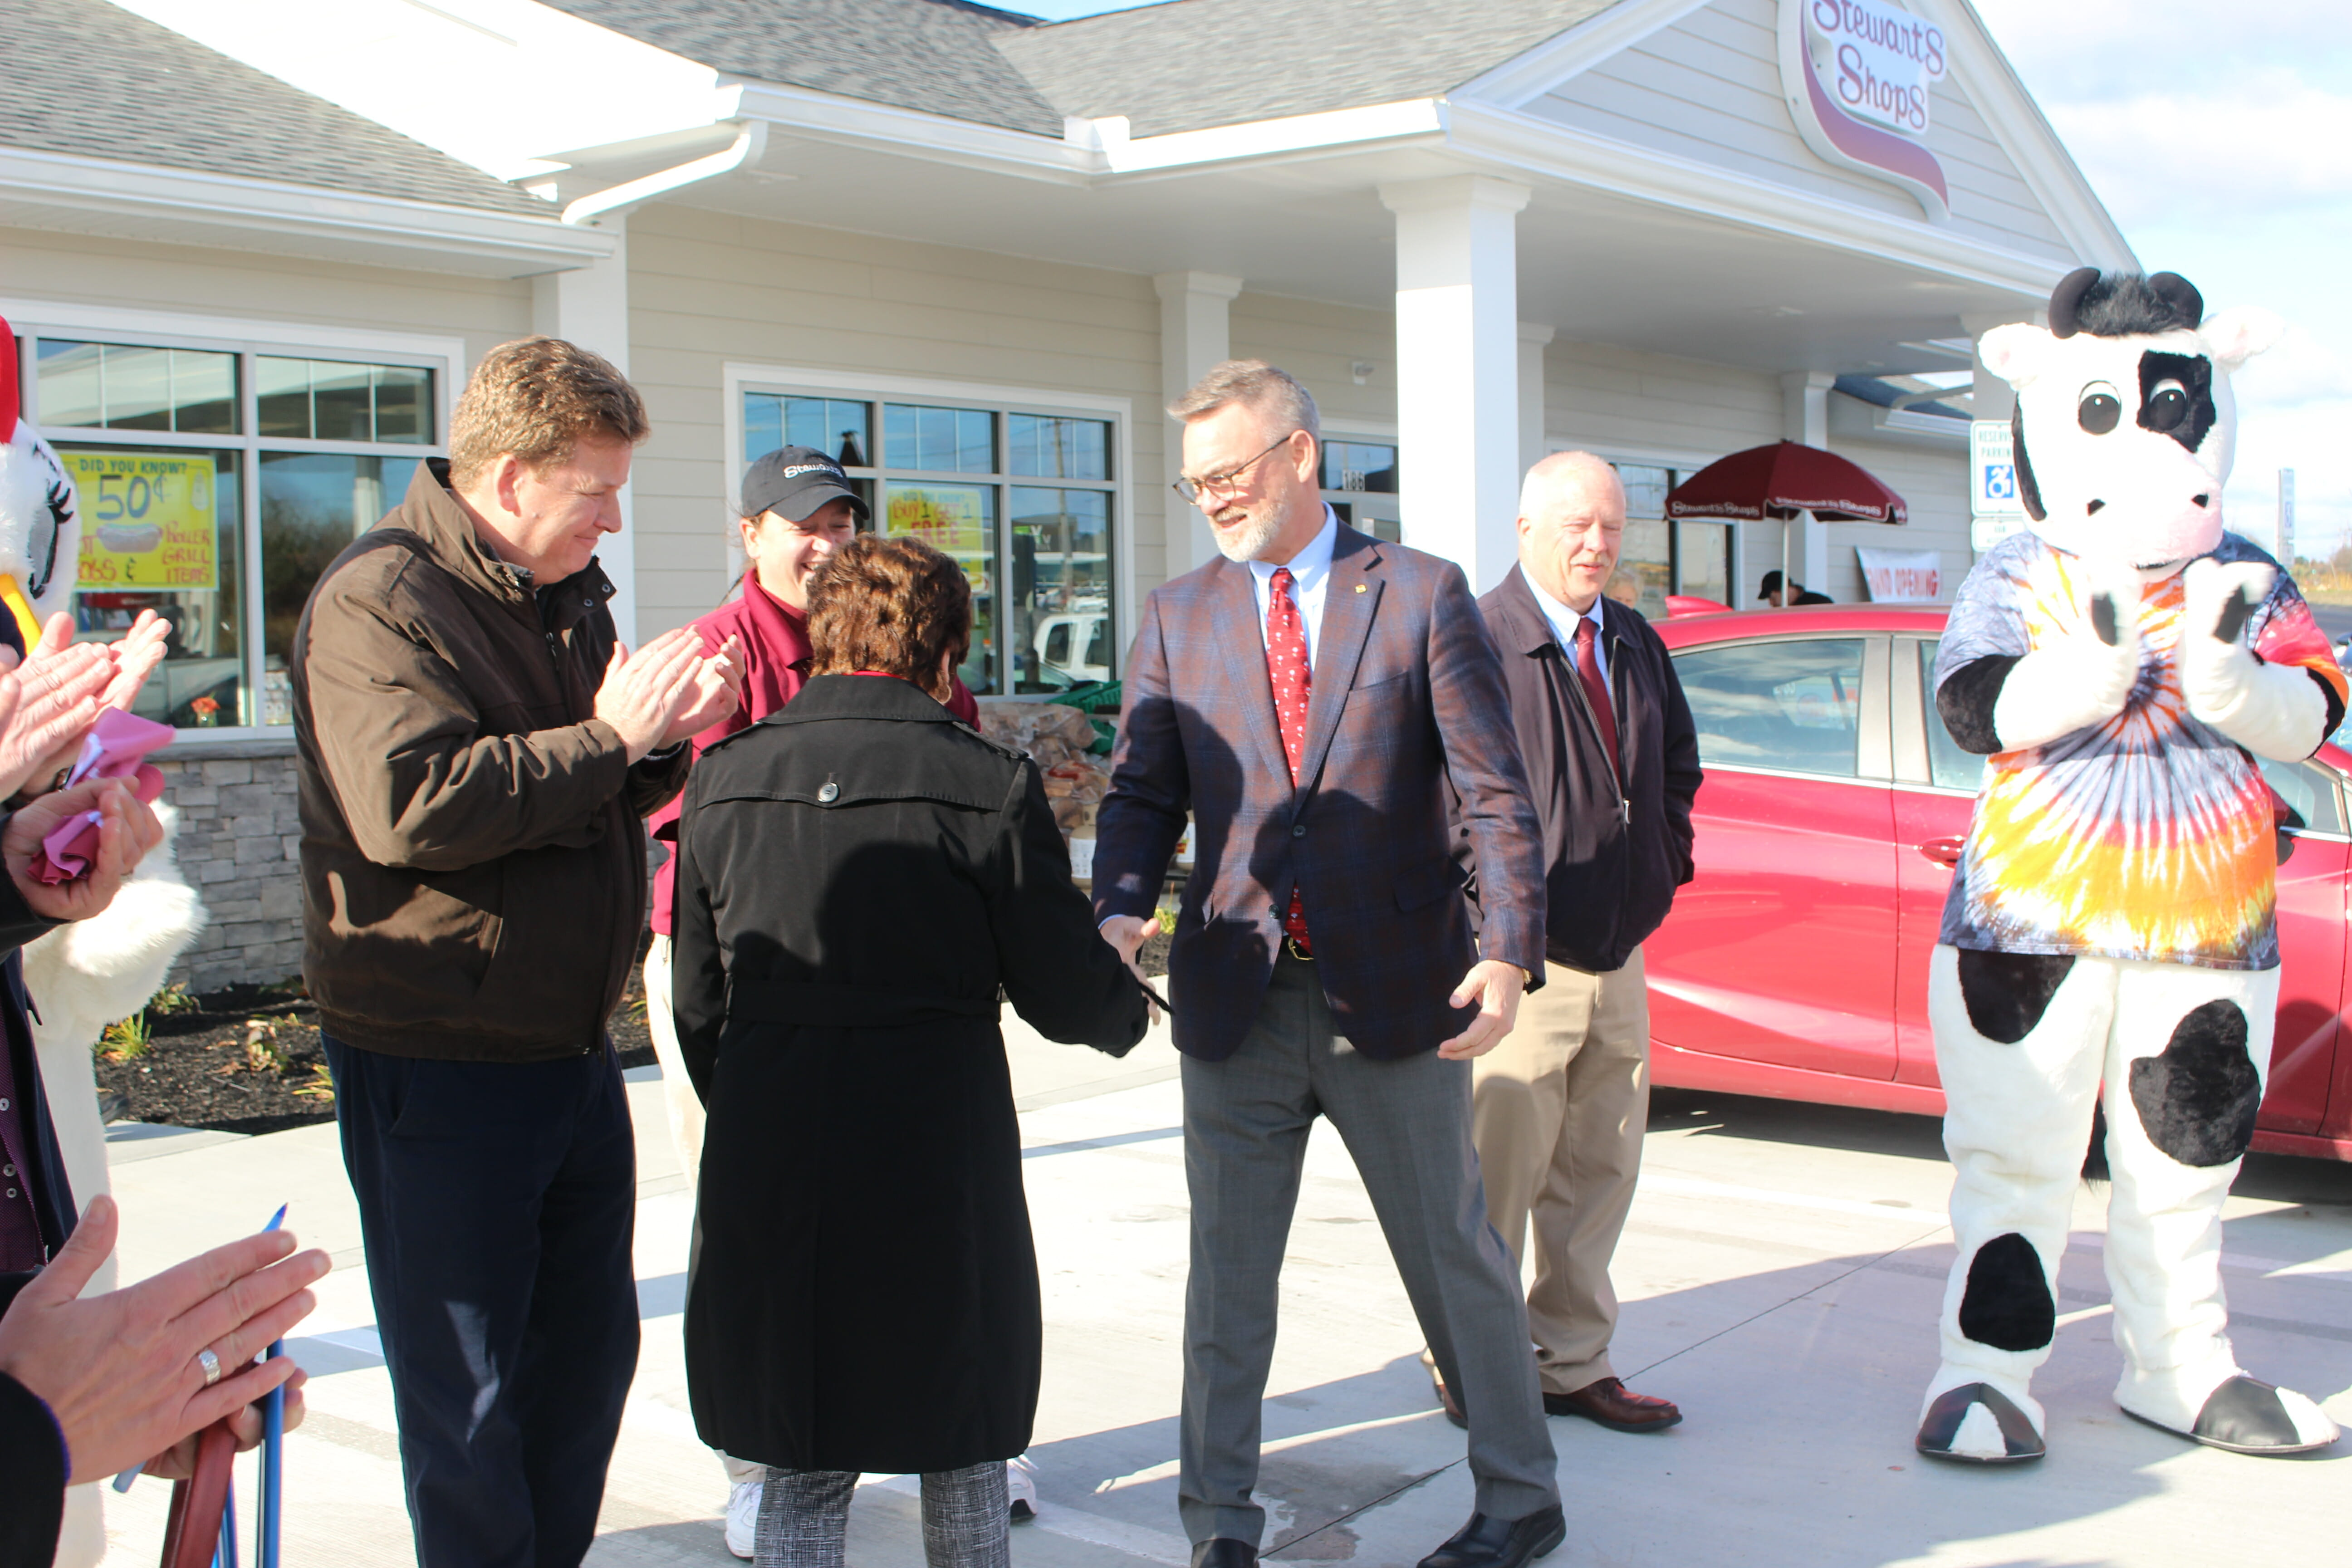 Gary Dake shaking hands with an official at the grand opening event